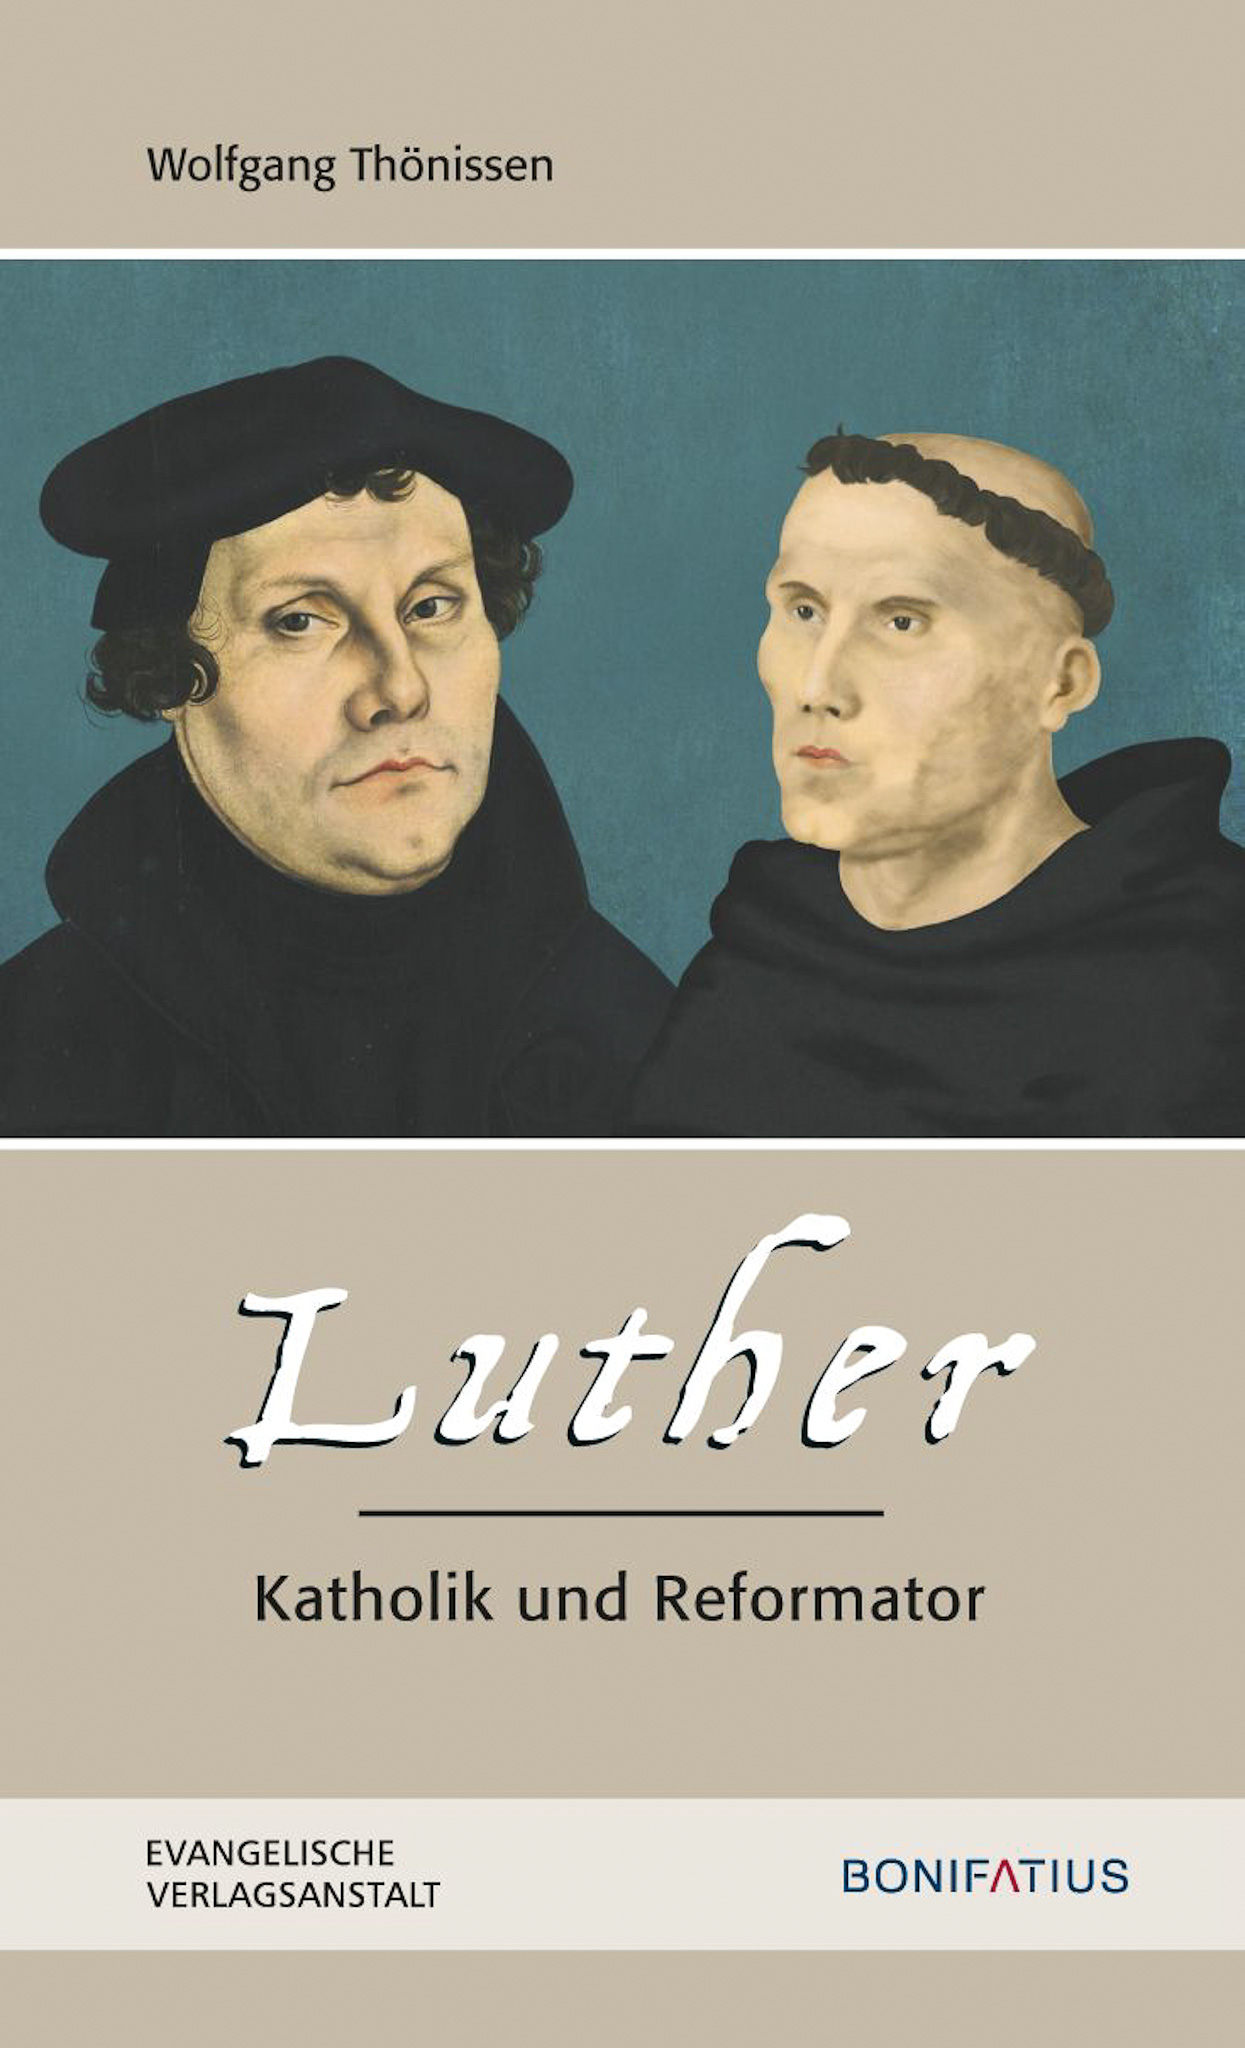 eva cover 04959 Bonifatius Thoenissen Luther